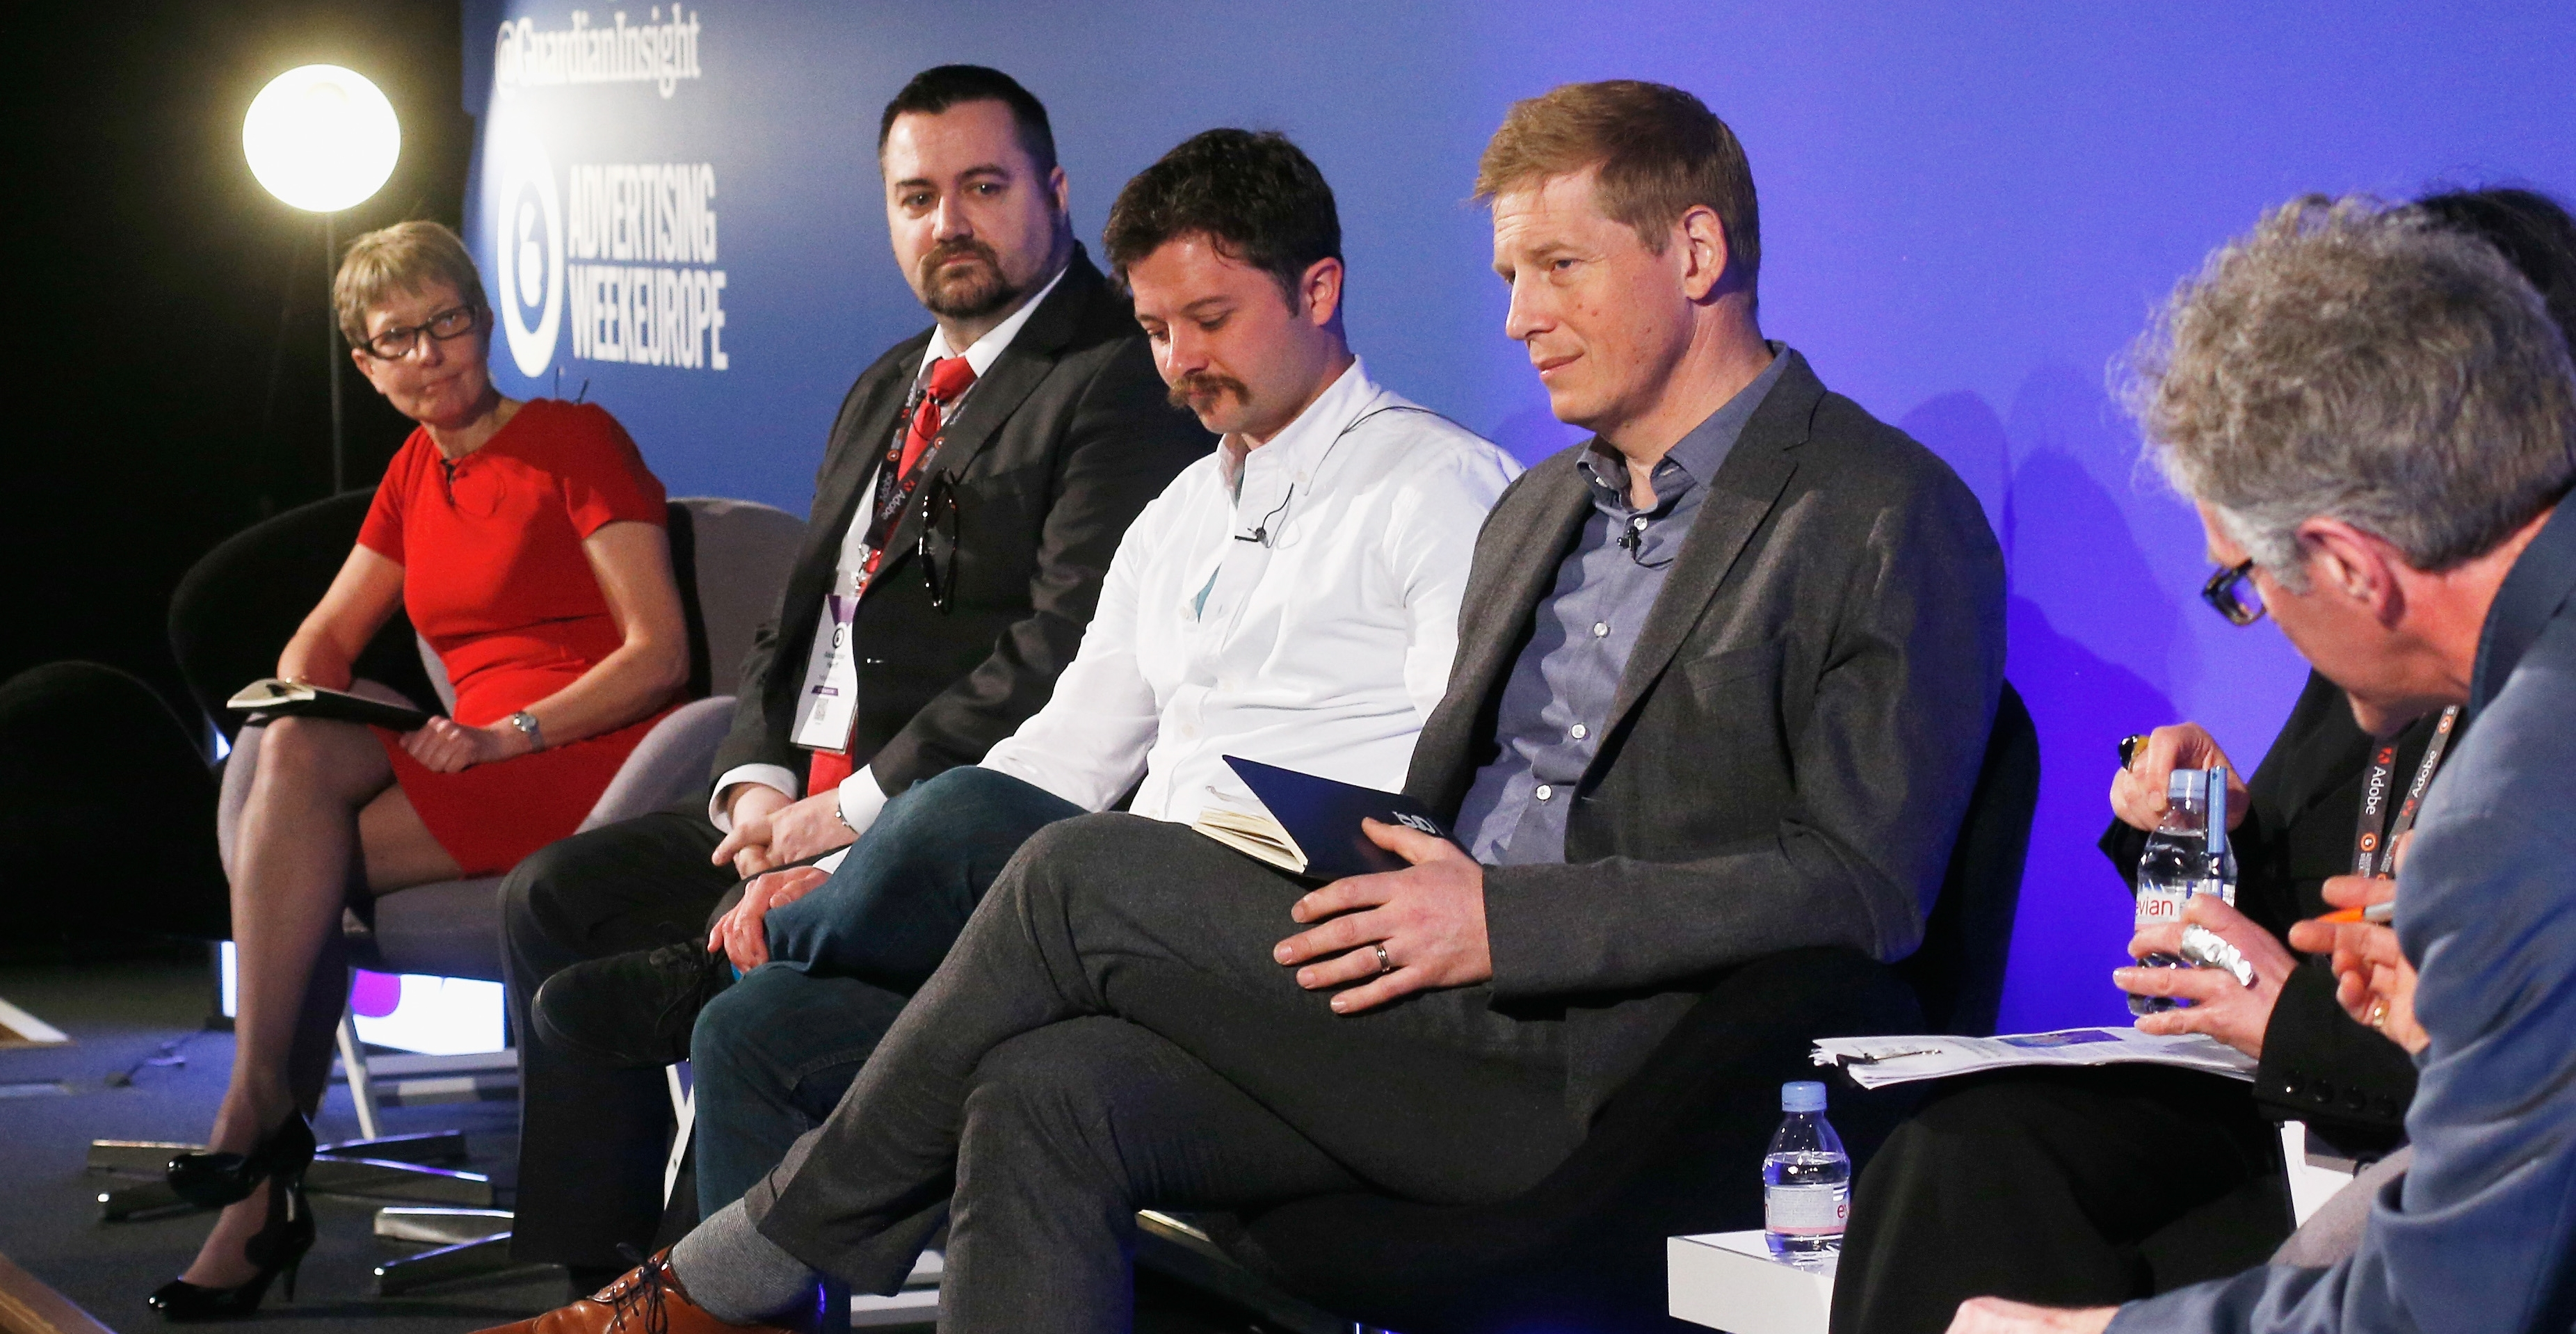 Tim Gentry, Ben Williams and Alexander Hanff on the 'Ad Blocking: A New Deal or a Modern Day Protection Racket?' panel at Ad Week Europe